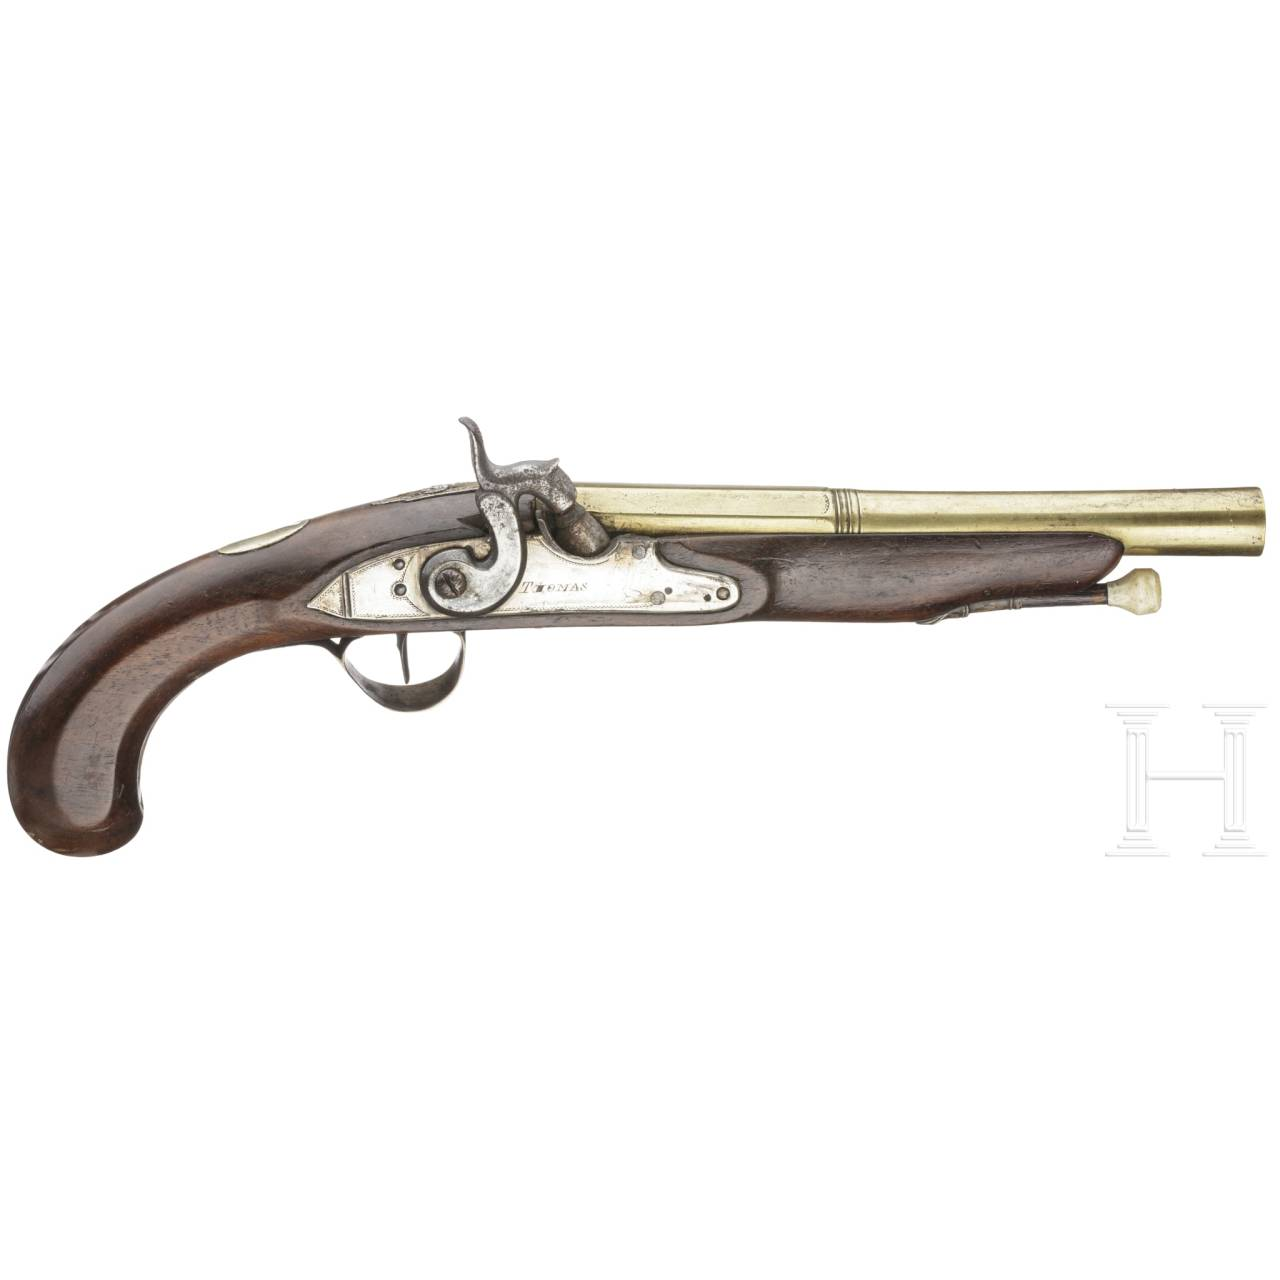 A percussion pistol by Thomas in London, ca. 1800